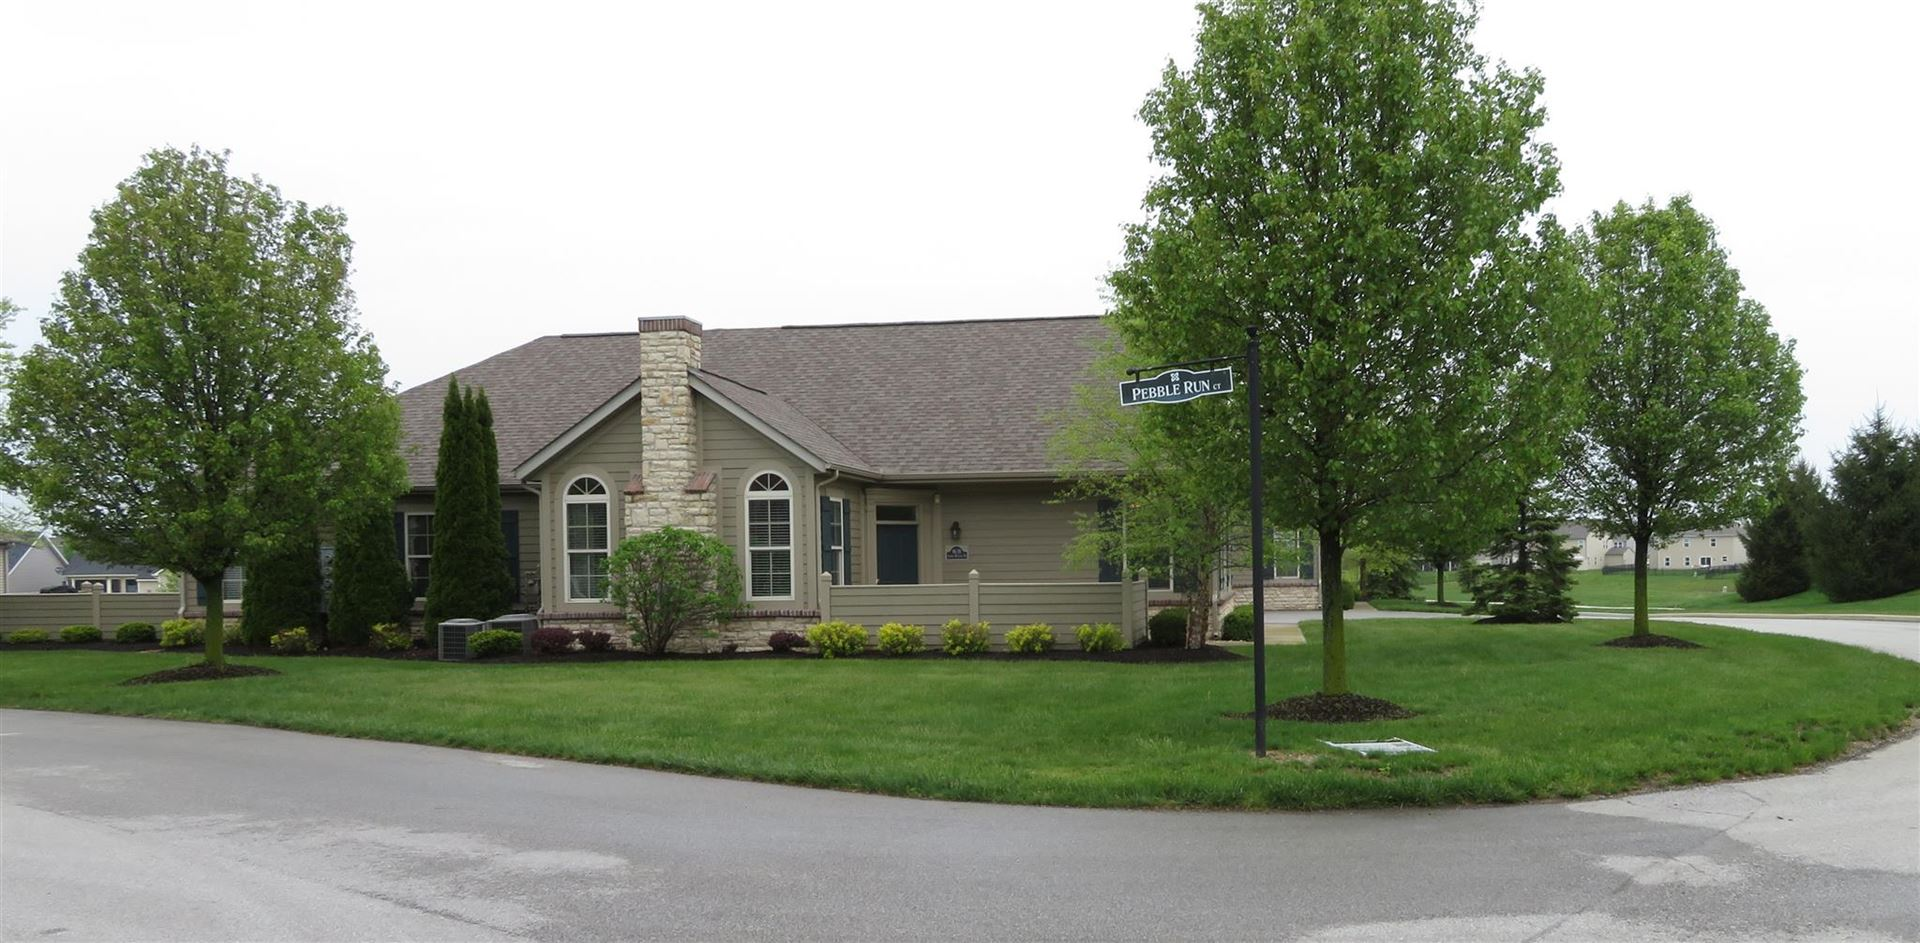 1631 Summit Reserve Drive, Fort Wayne, IN 46814 - #: 202007352